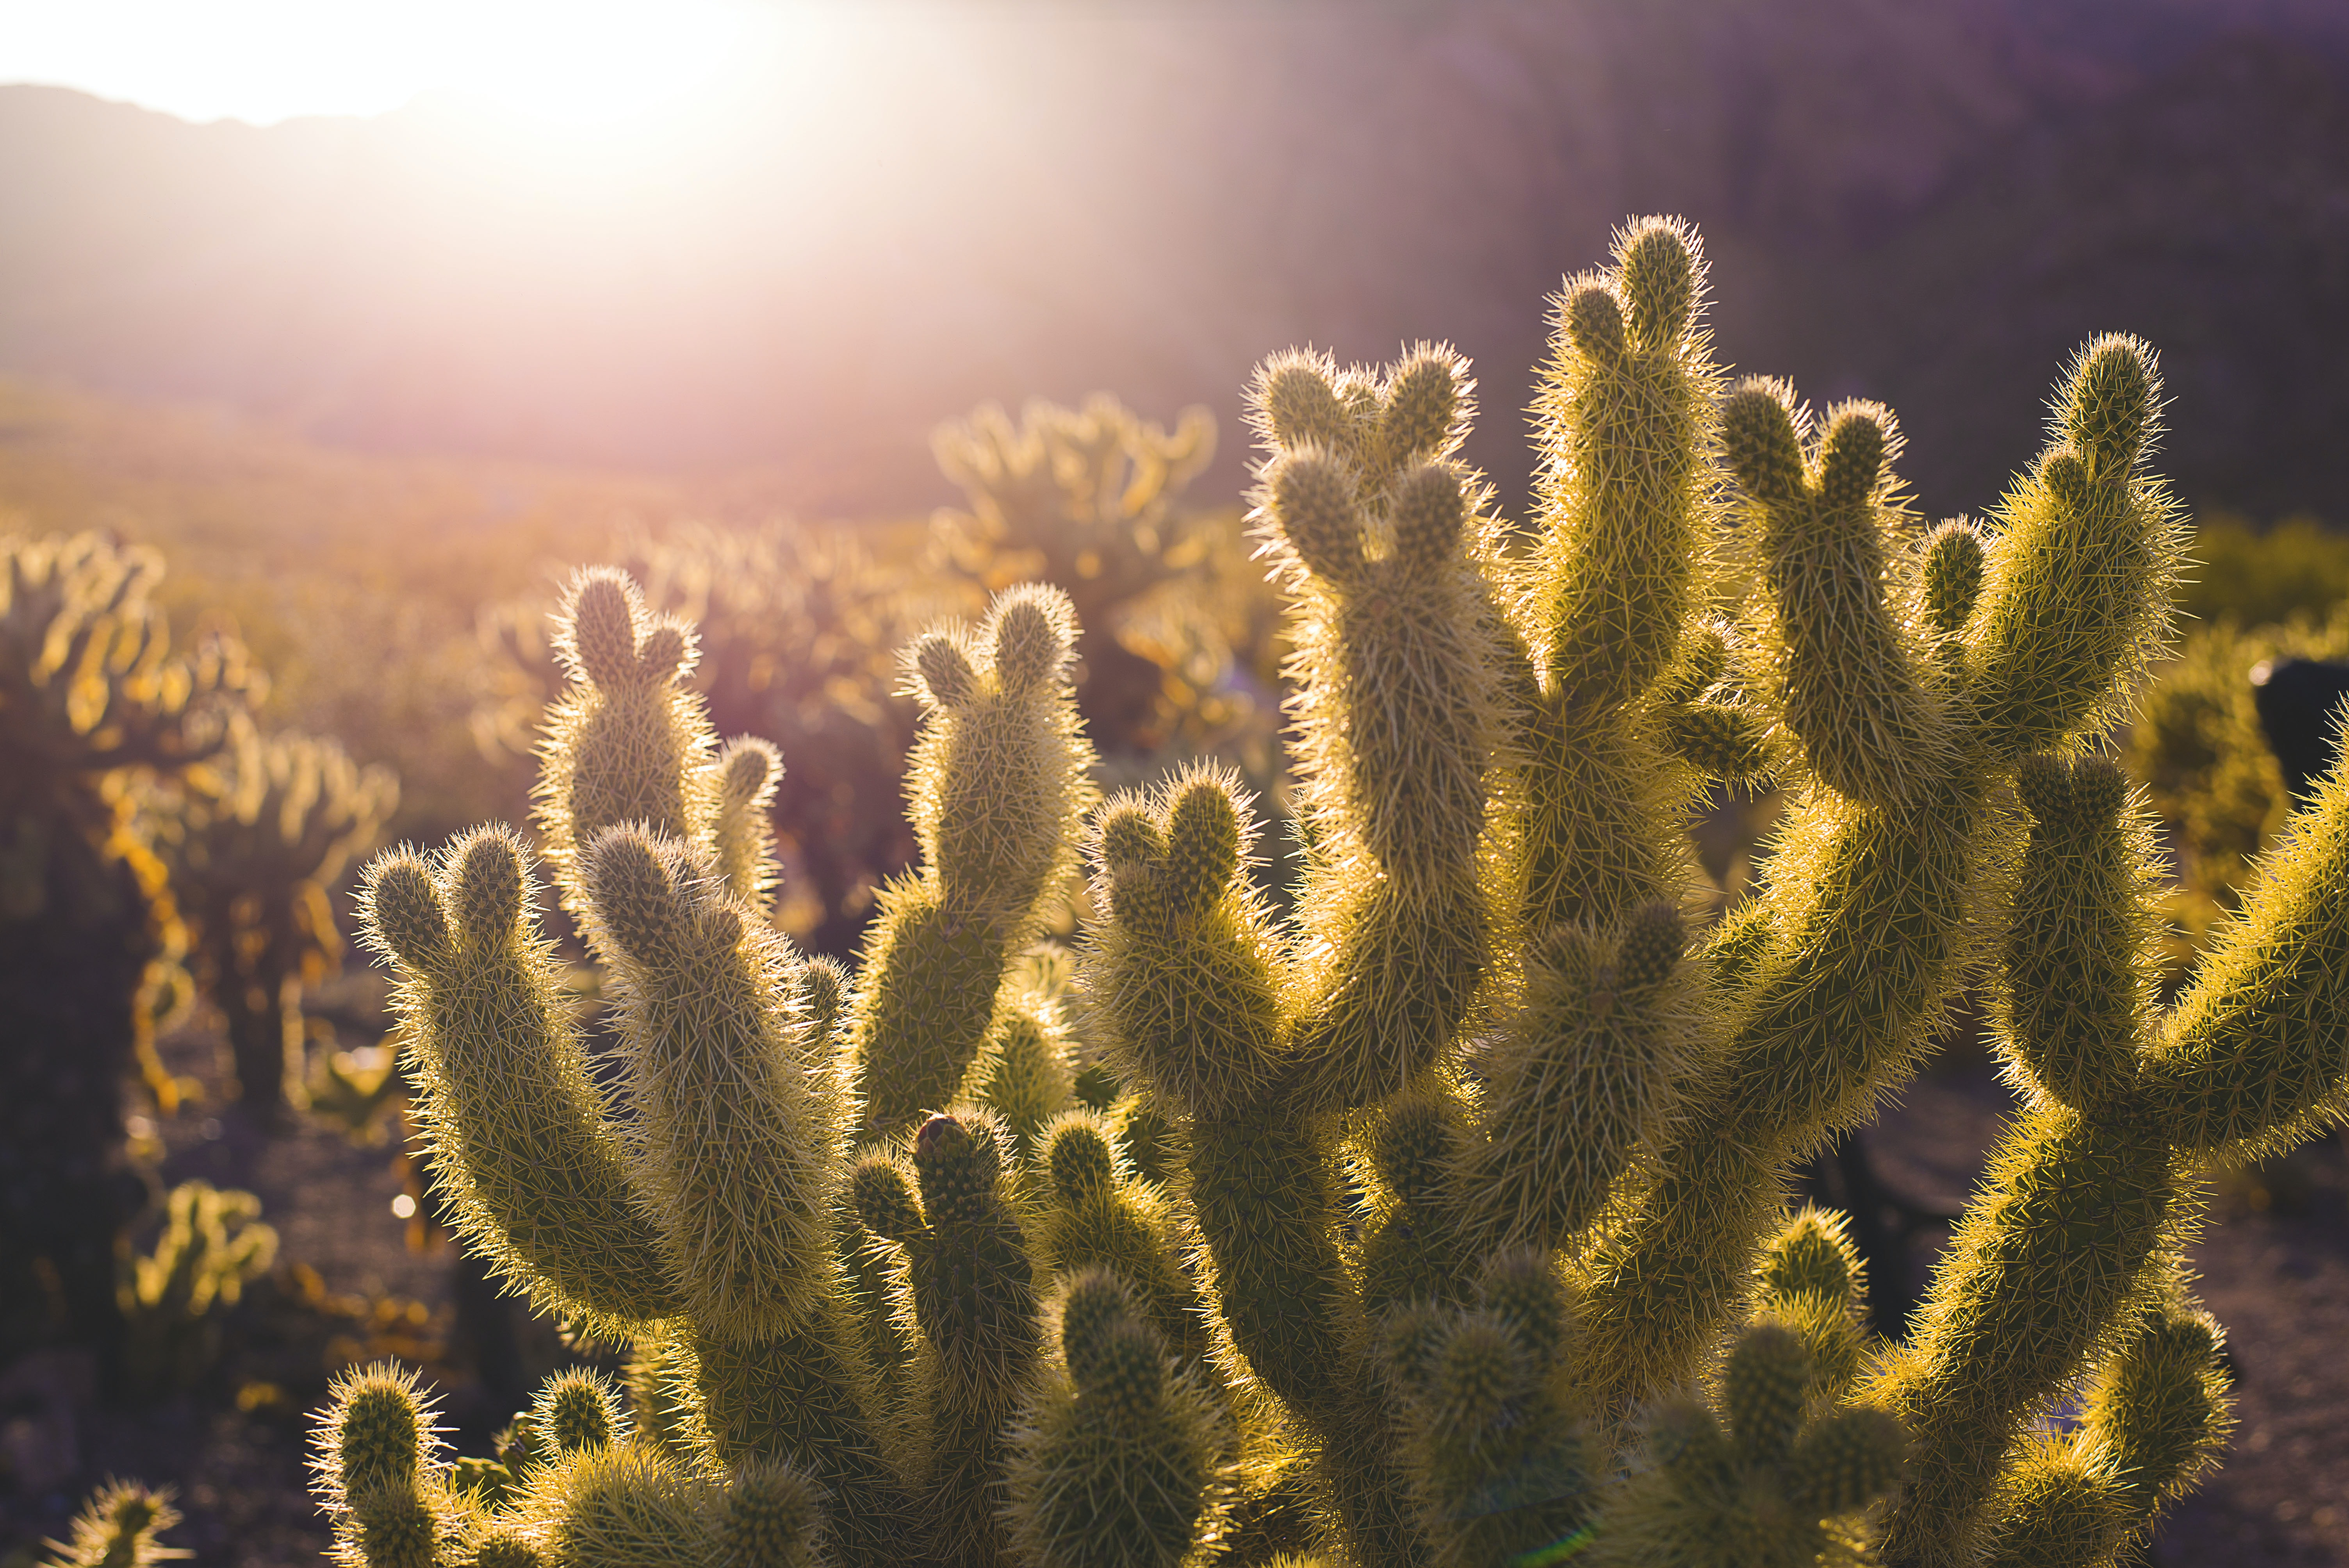 A close-up of an impressive cactus in a cactus field during sunset